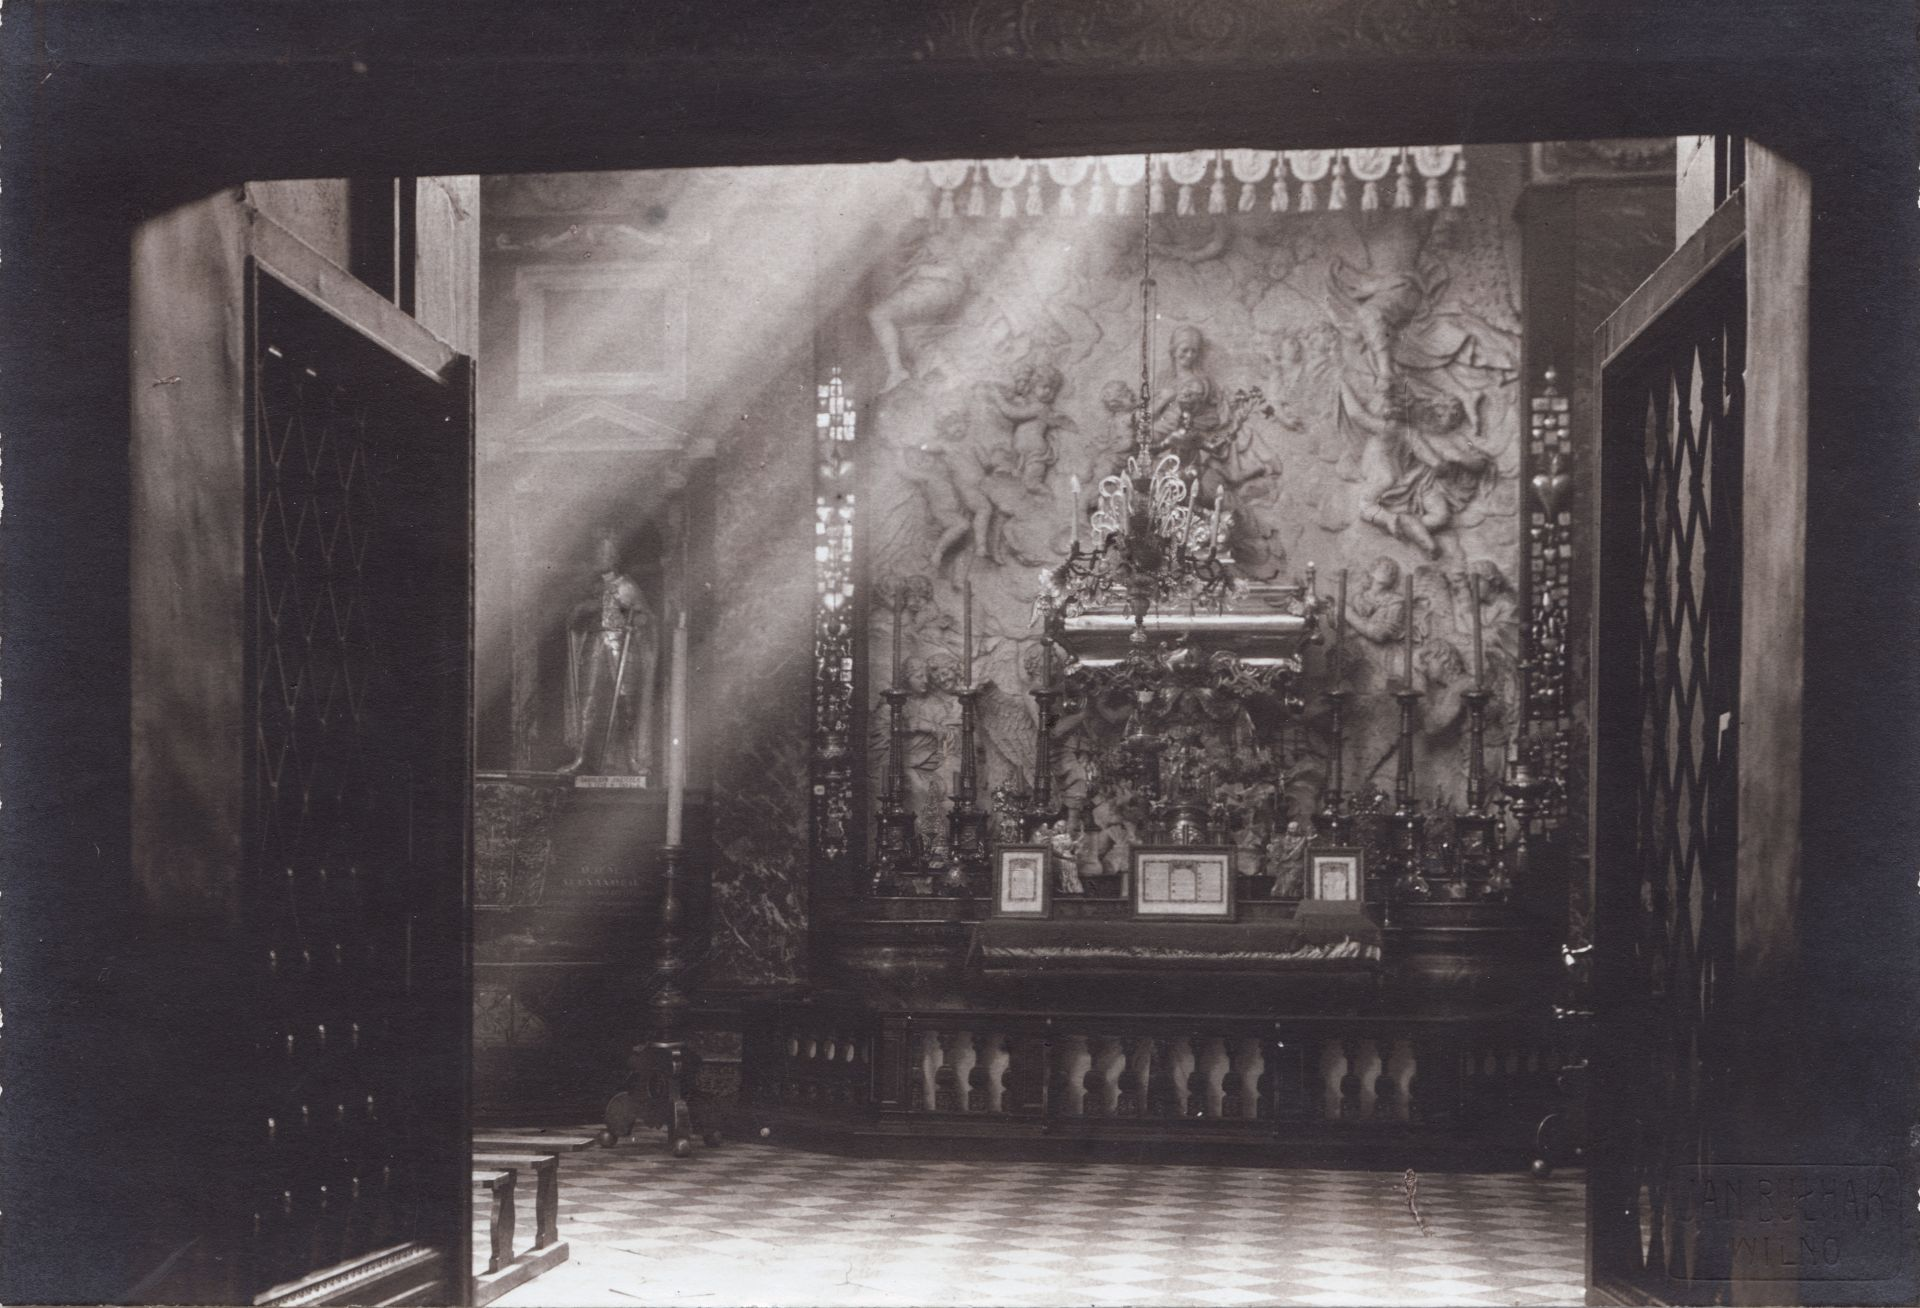 Chandelier at the Chapel of Saint Casimir of the Cathedral Basilica of Vilnius. Photo by Jan Bułhak, 1931, in: Lietuvos dailės muziejus, inv. Nr. Fi-283